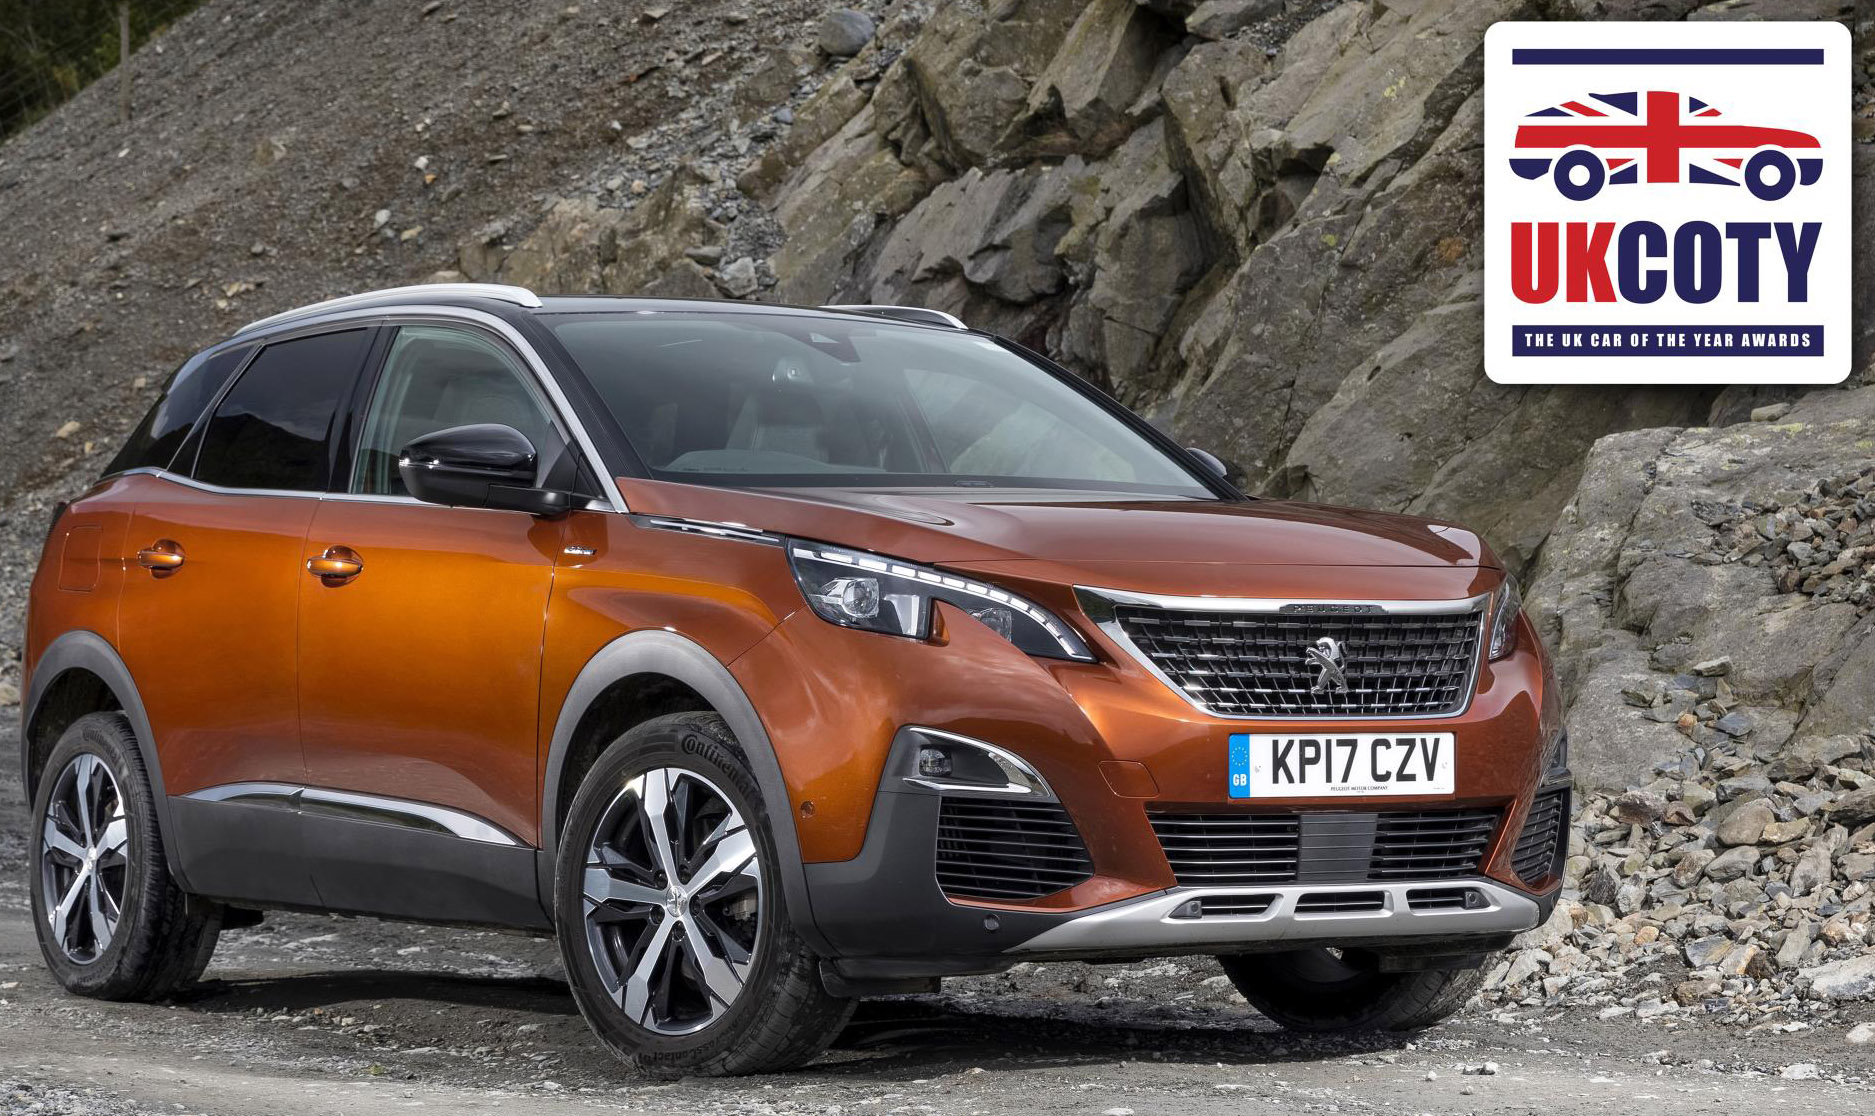 peugeot 3008 suv announced as best family car in the uk car of the year awards 2018 the. Black Bedroom Furniture Sets. Home Design Ideas